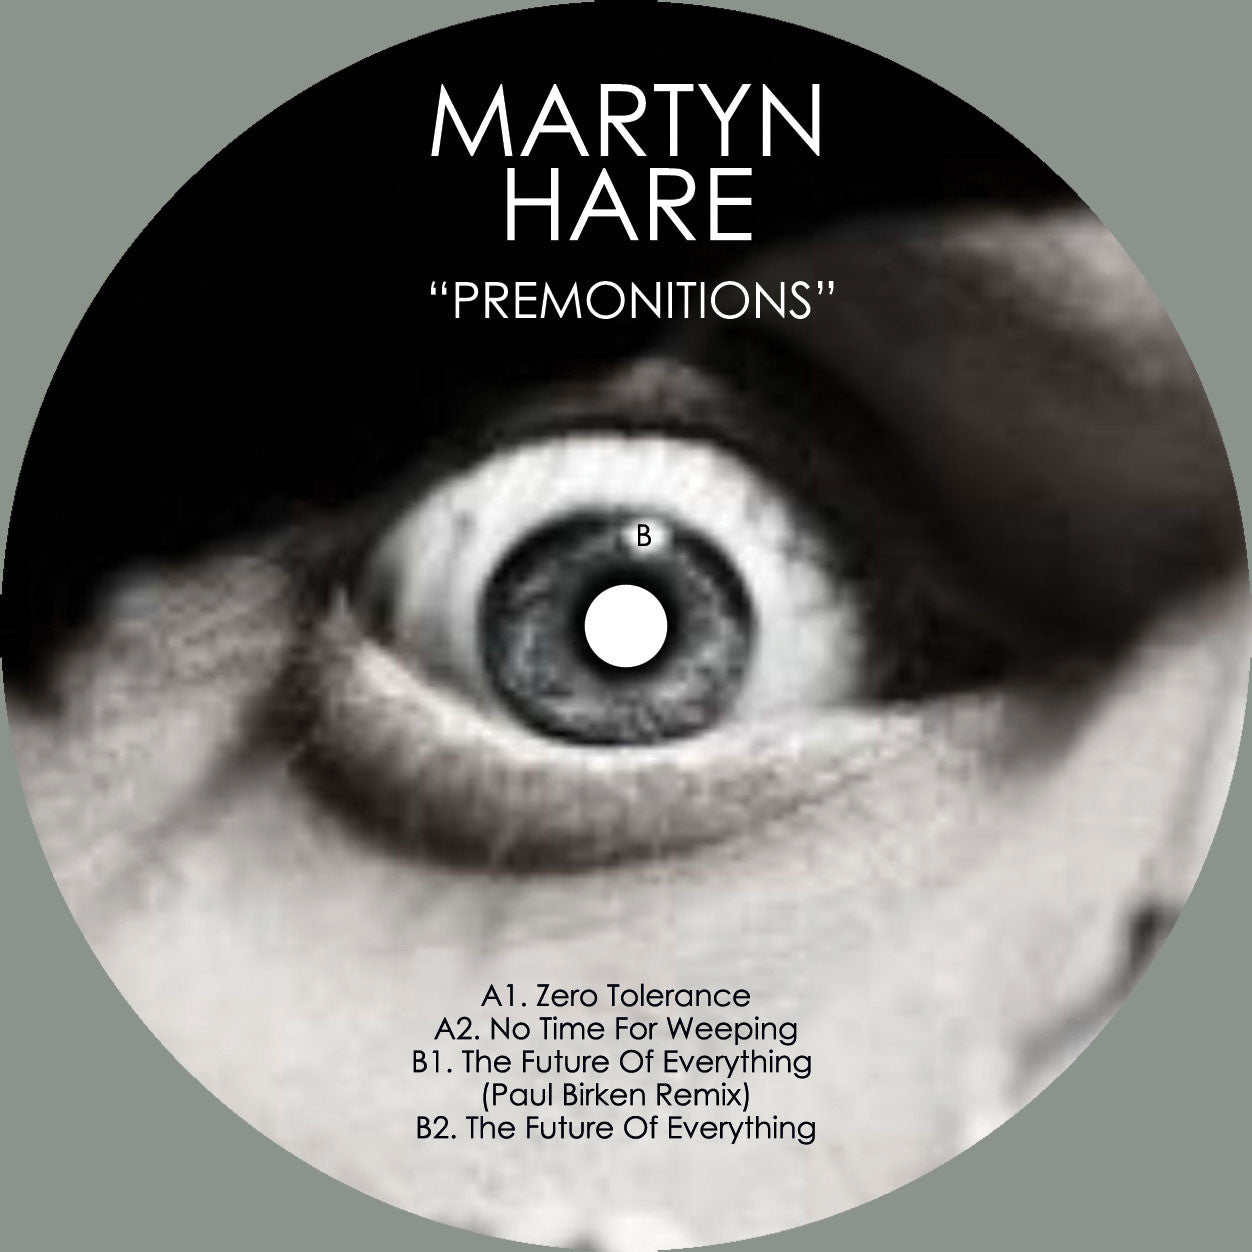 Martyn Hare - Premonitions - Unearthed Sounds